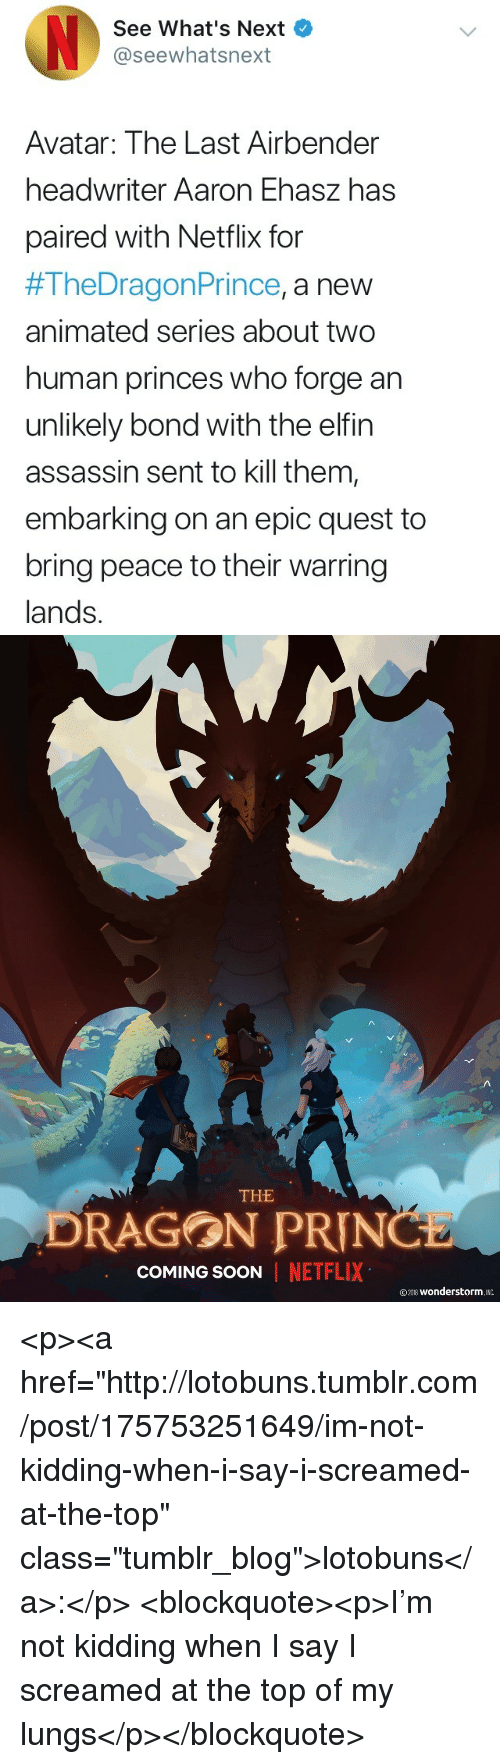 """Netflix, Prince, and Soon...: See What's Next  @seewhatsnext  Avatar: The Last Airbender  headwriter Aaron Ehasz has  paired with Netflix for  #TheDragon Prince, a new  animated series about two  human princes who forge an  unlikely bond with the elfin  assassin sent to kill them  embarking on an epic quest to  bring peace to their warring  lands.   THE  DRAGON PRIN  COMING SOON  NETFLIX  ©2018 wonderstorm. INC <p><a href=""""http://lotobuns.tumblr.com/post/175753251649/im-not-kidding-when-i-say-i-screamed-at-the-top"""" class=""""tumblr_blog"""">lotobuns</a>:</p> <blockquote><p>I'm not kidding when I say I screamed at the top of my lungs</p></blockquote>"""